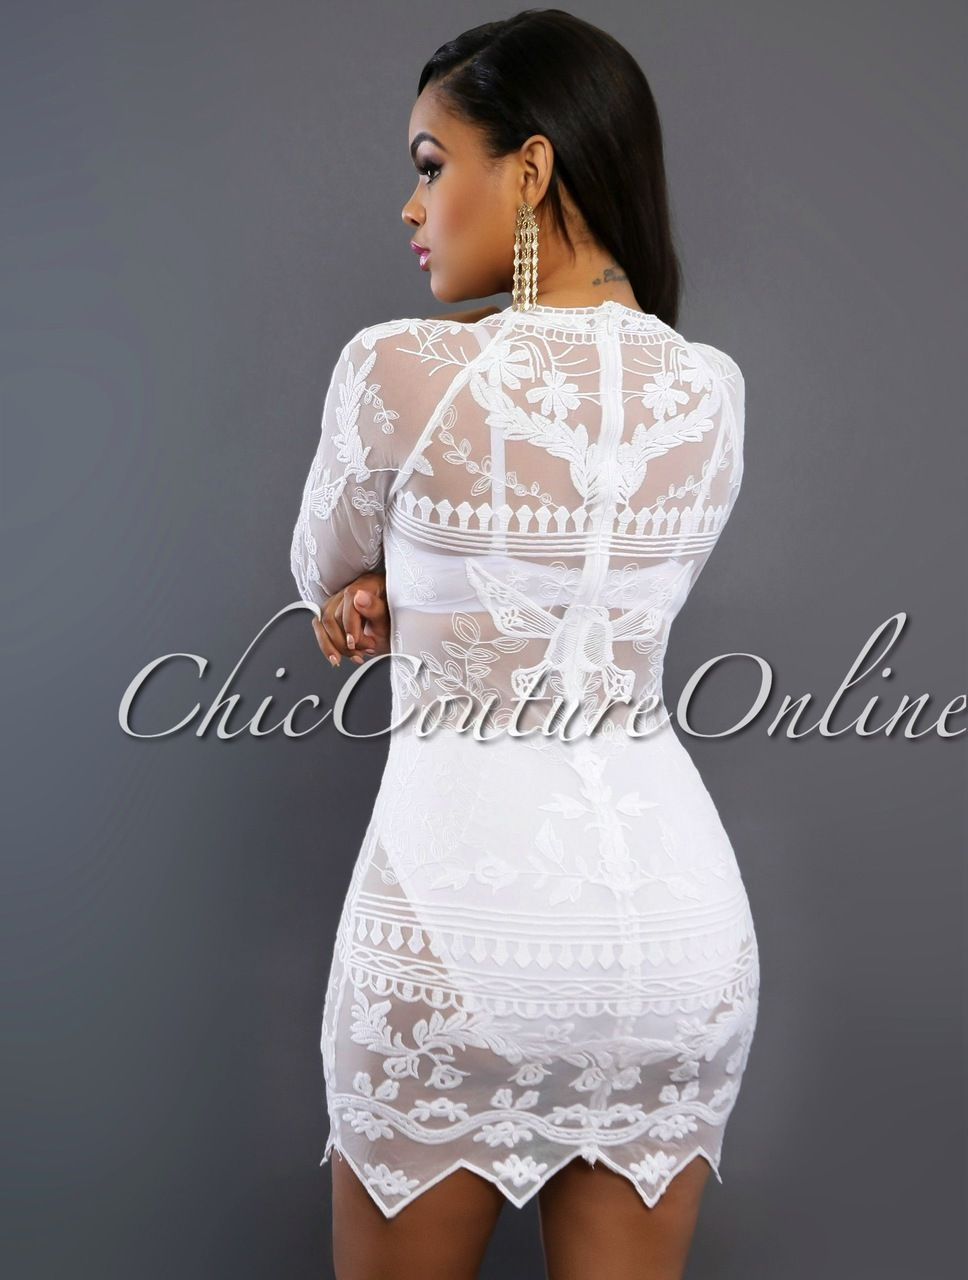 Chic Couture Online - Falone White Sheer Lace Cover-up Dress,(http ...